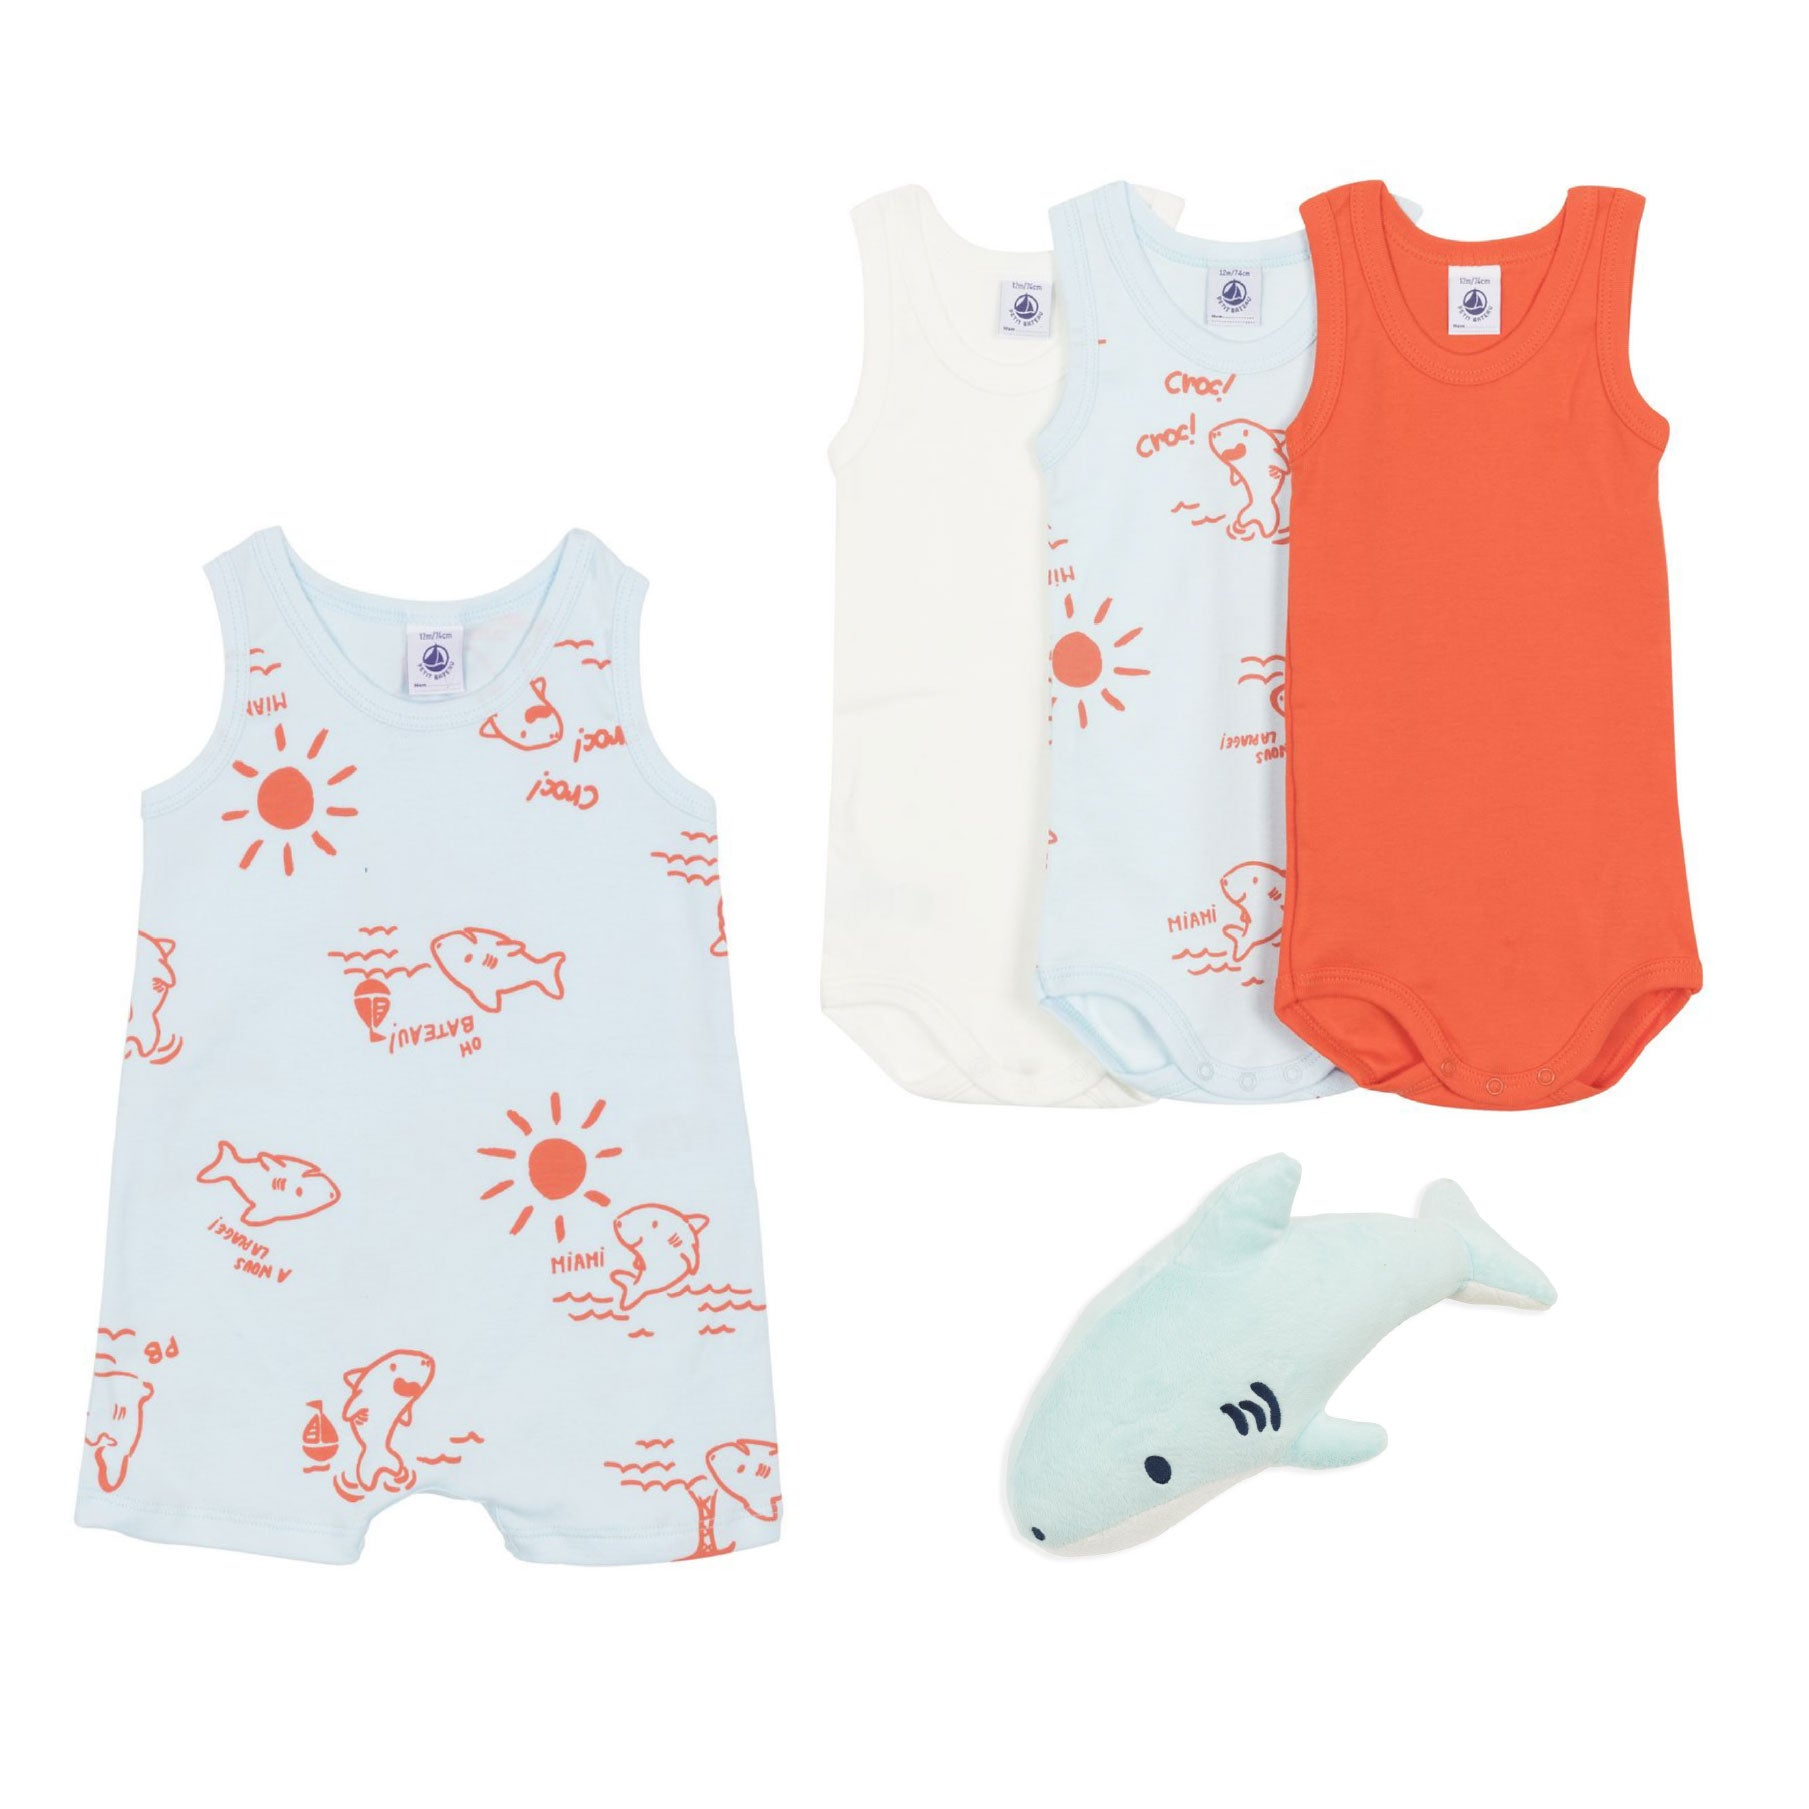 Baby Shark Baby Gift by Bonjour Baby Baskets featuring Petit Bateau